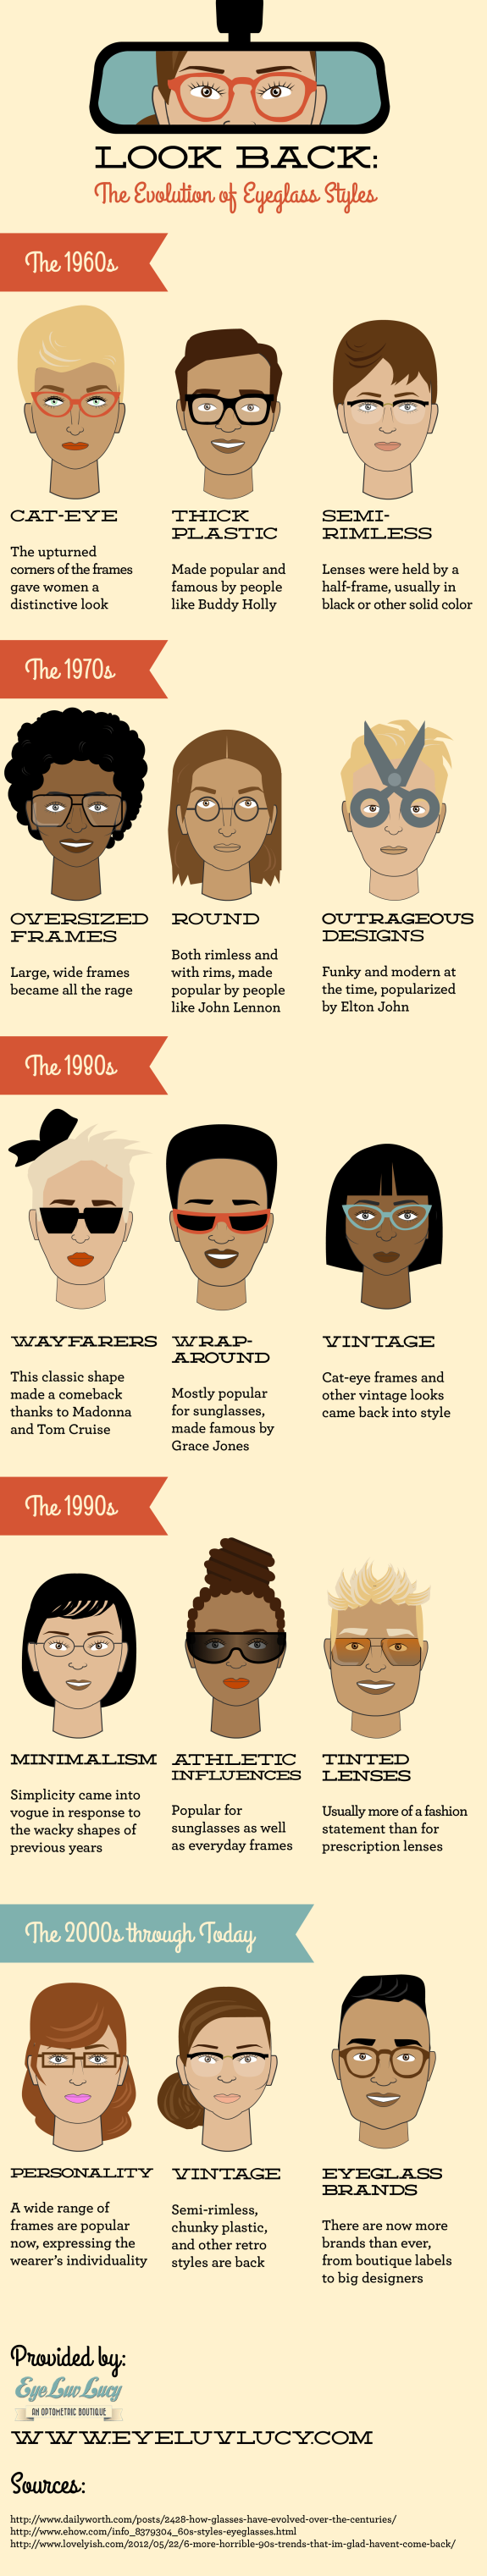 Look-Back-The-Evolution-of-Eyeglass-Styles-Infographic[1]